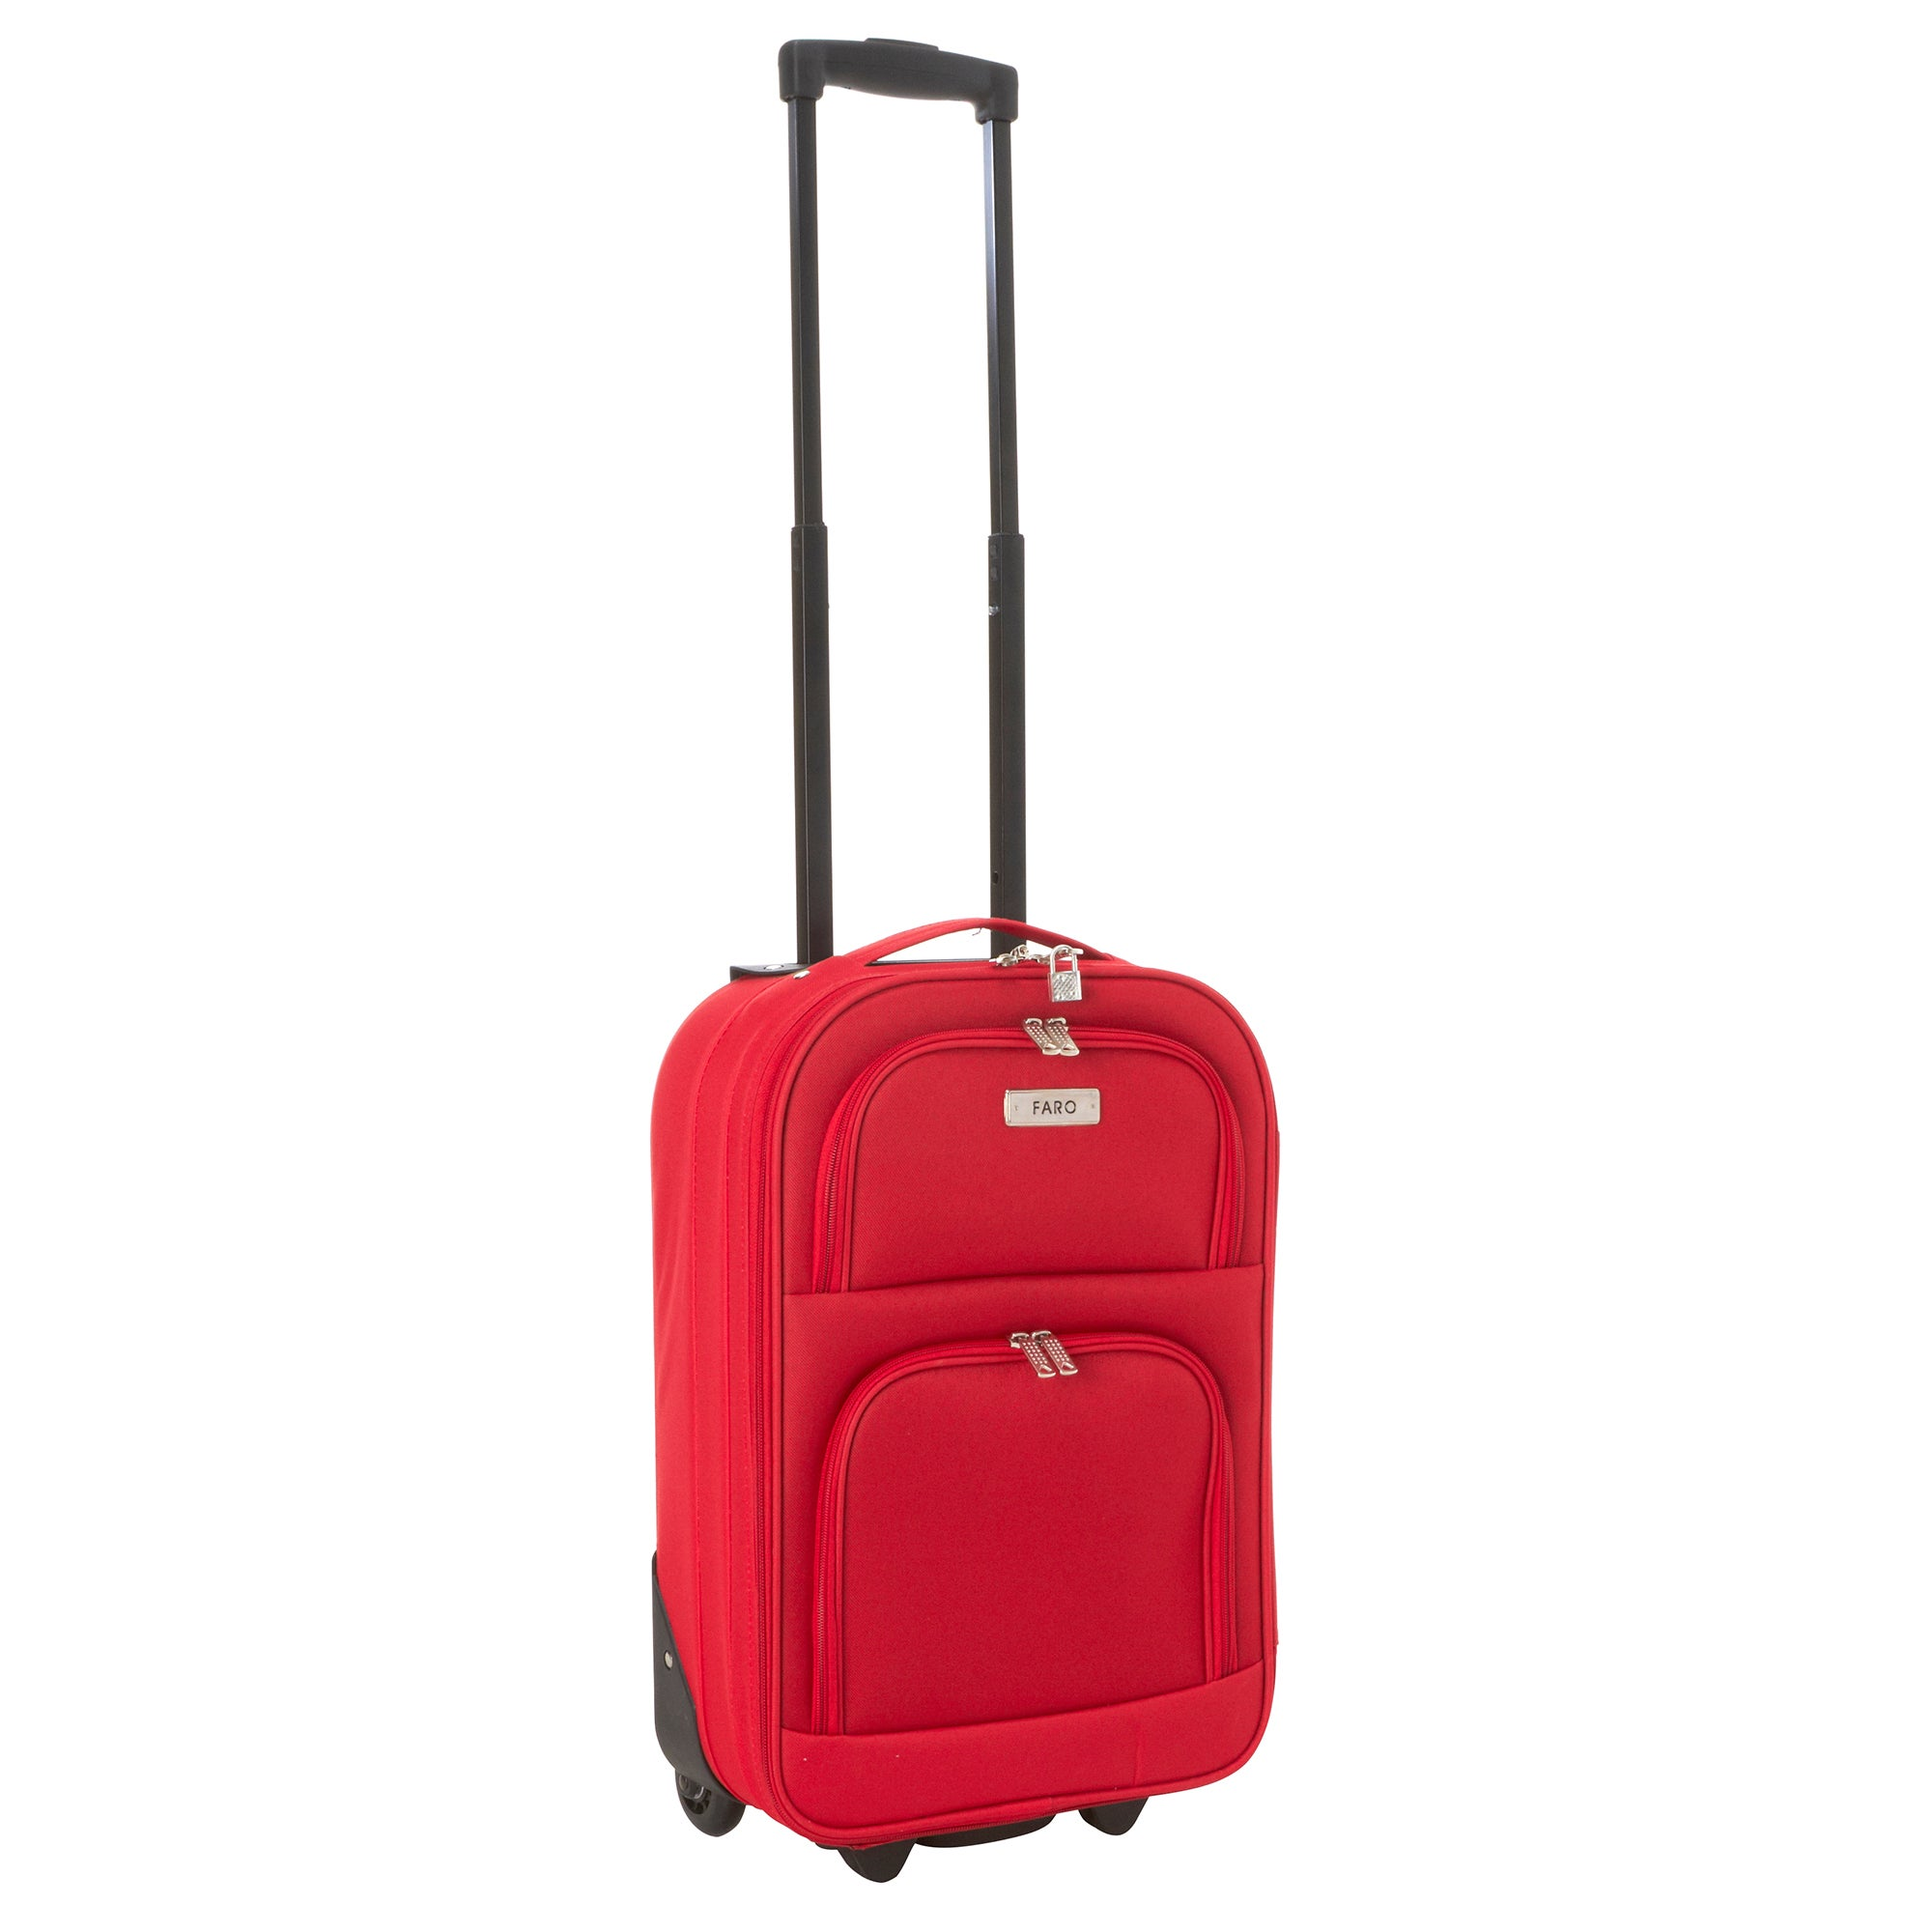 Faro Red 16 Inch Cabin Case